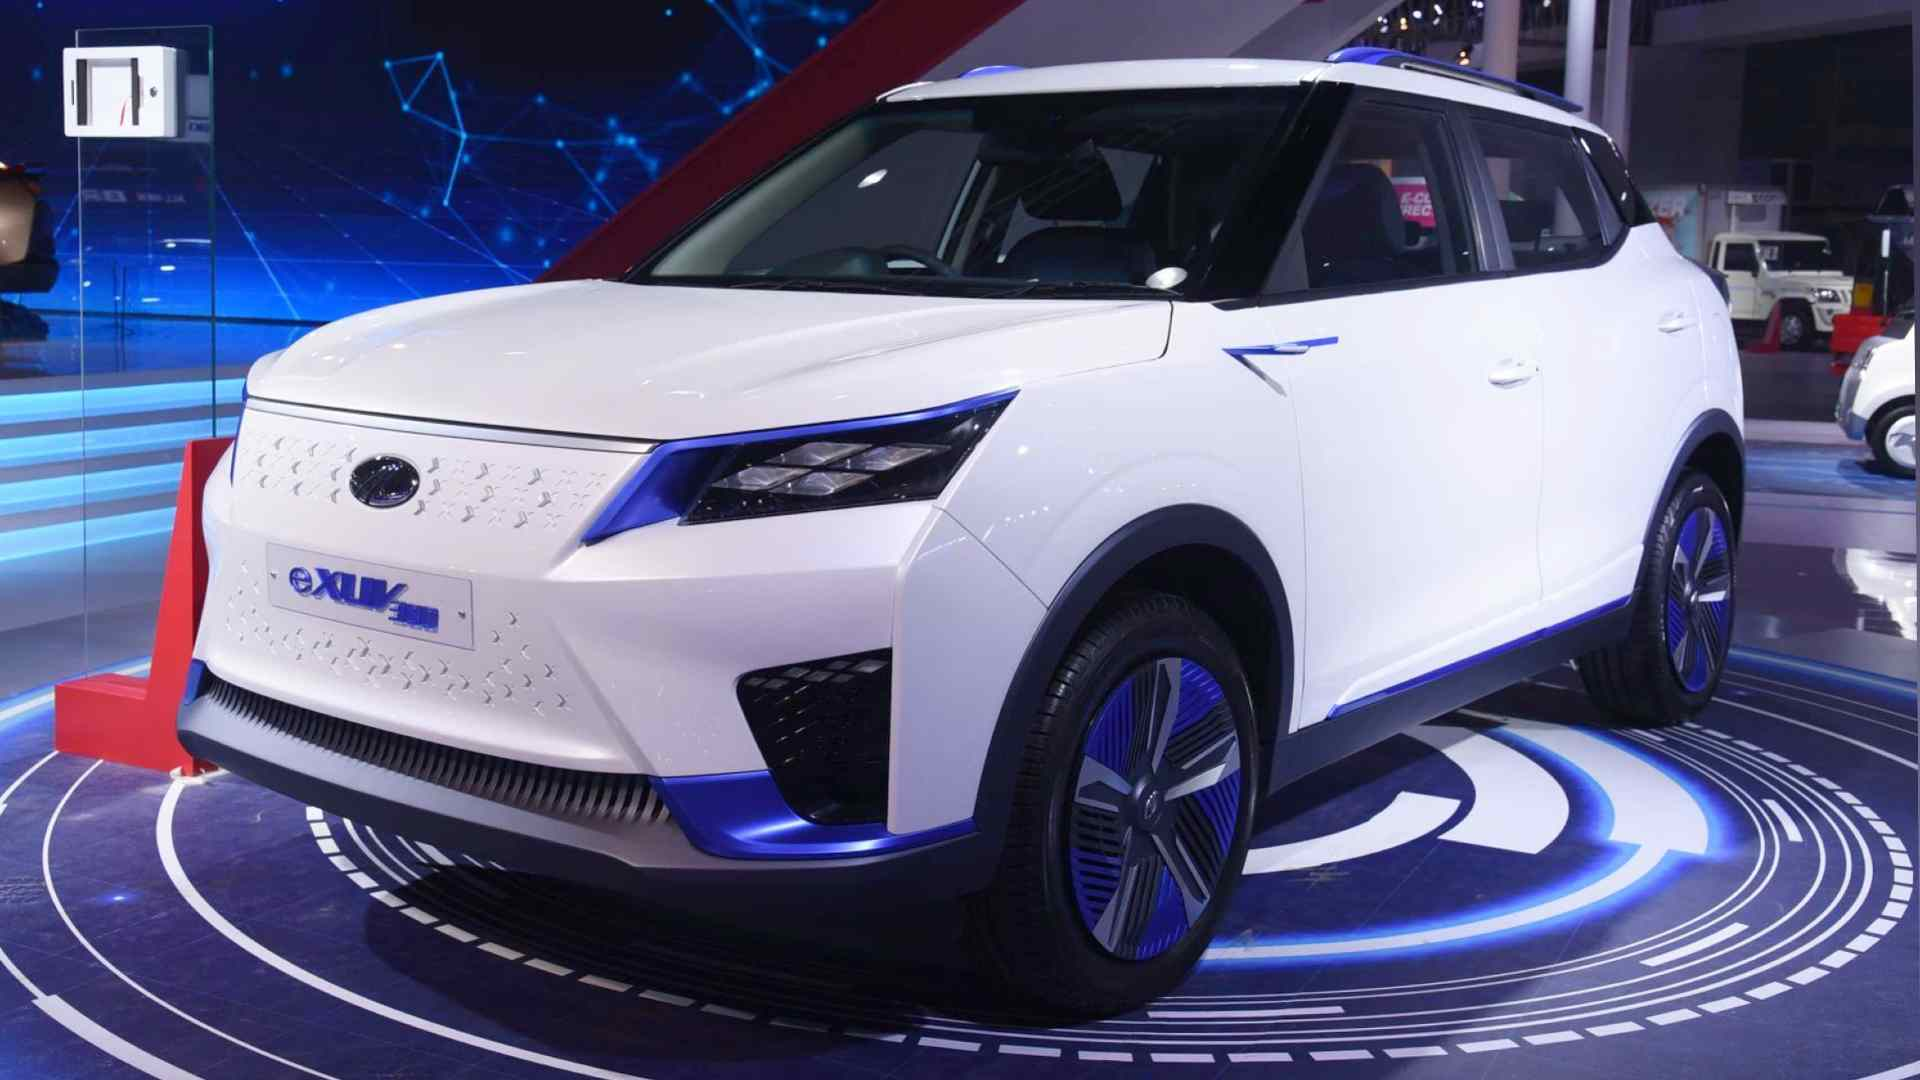 All-electric Mahindra eXUV300, Mahindra eKUV100 SUVs to be launched in India in 2022- Technology News, Gadgetclock